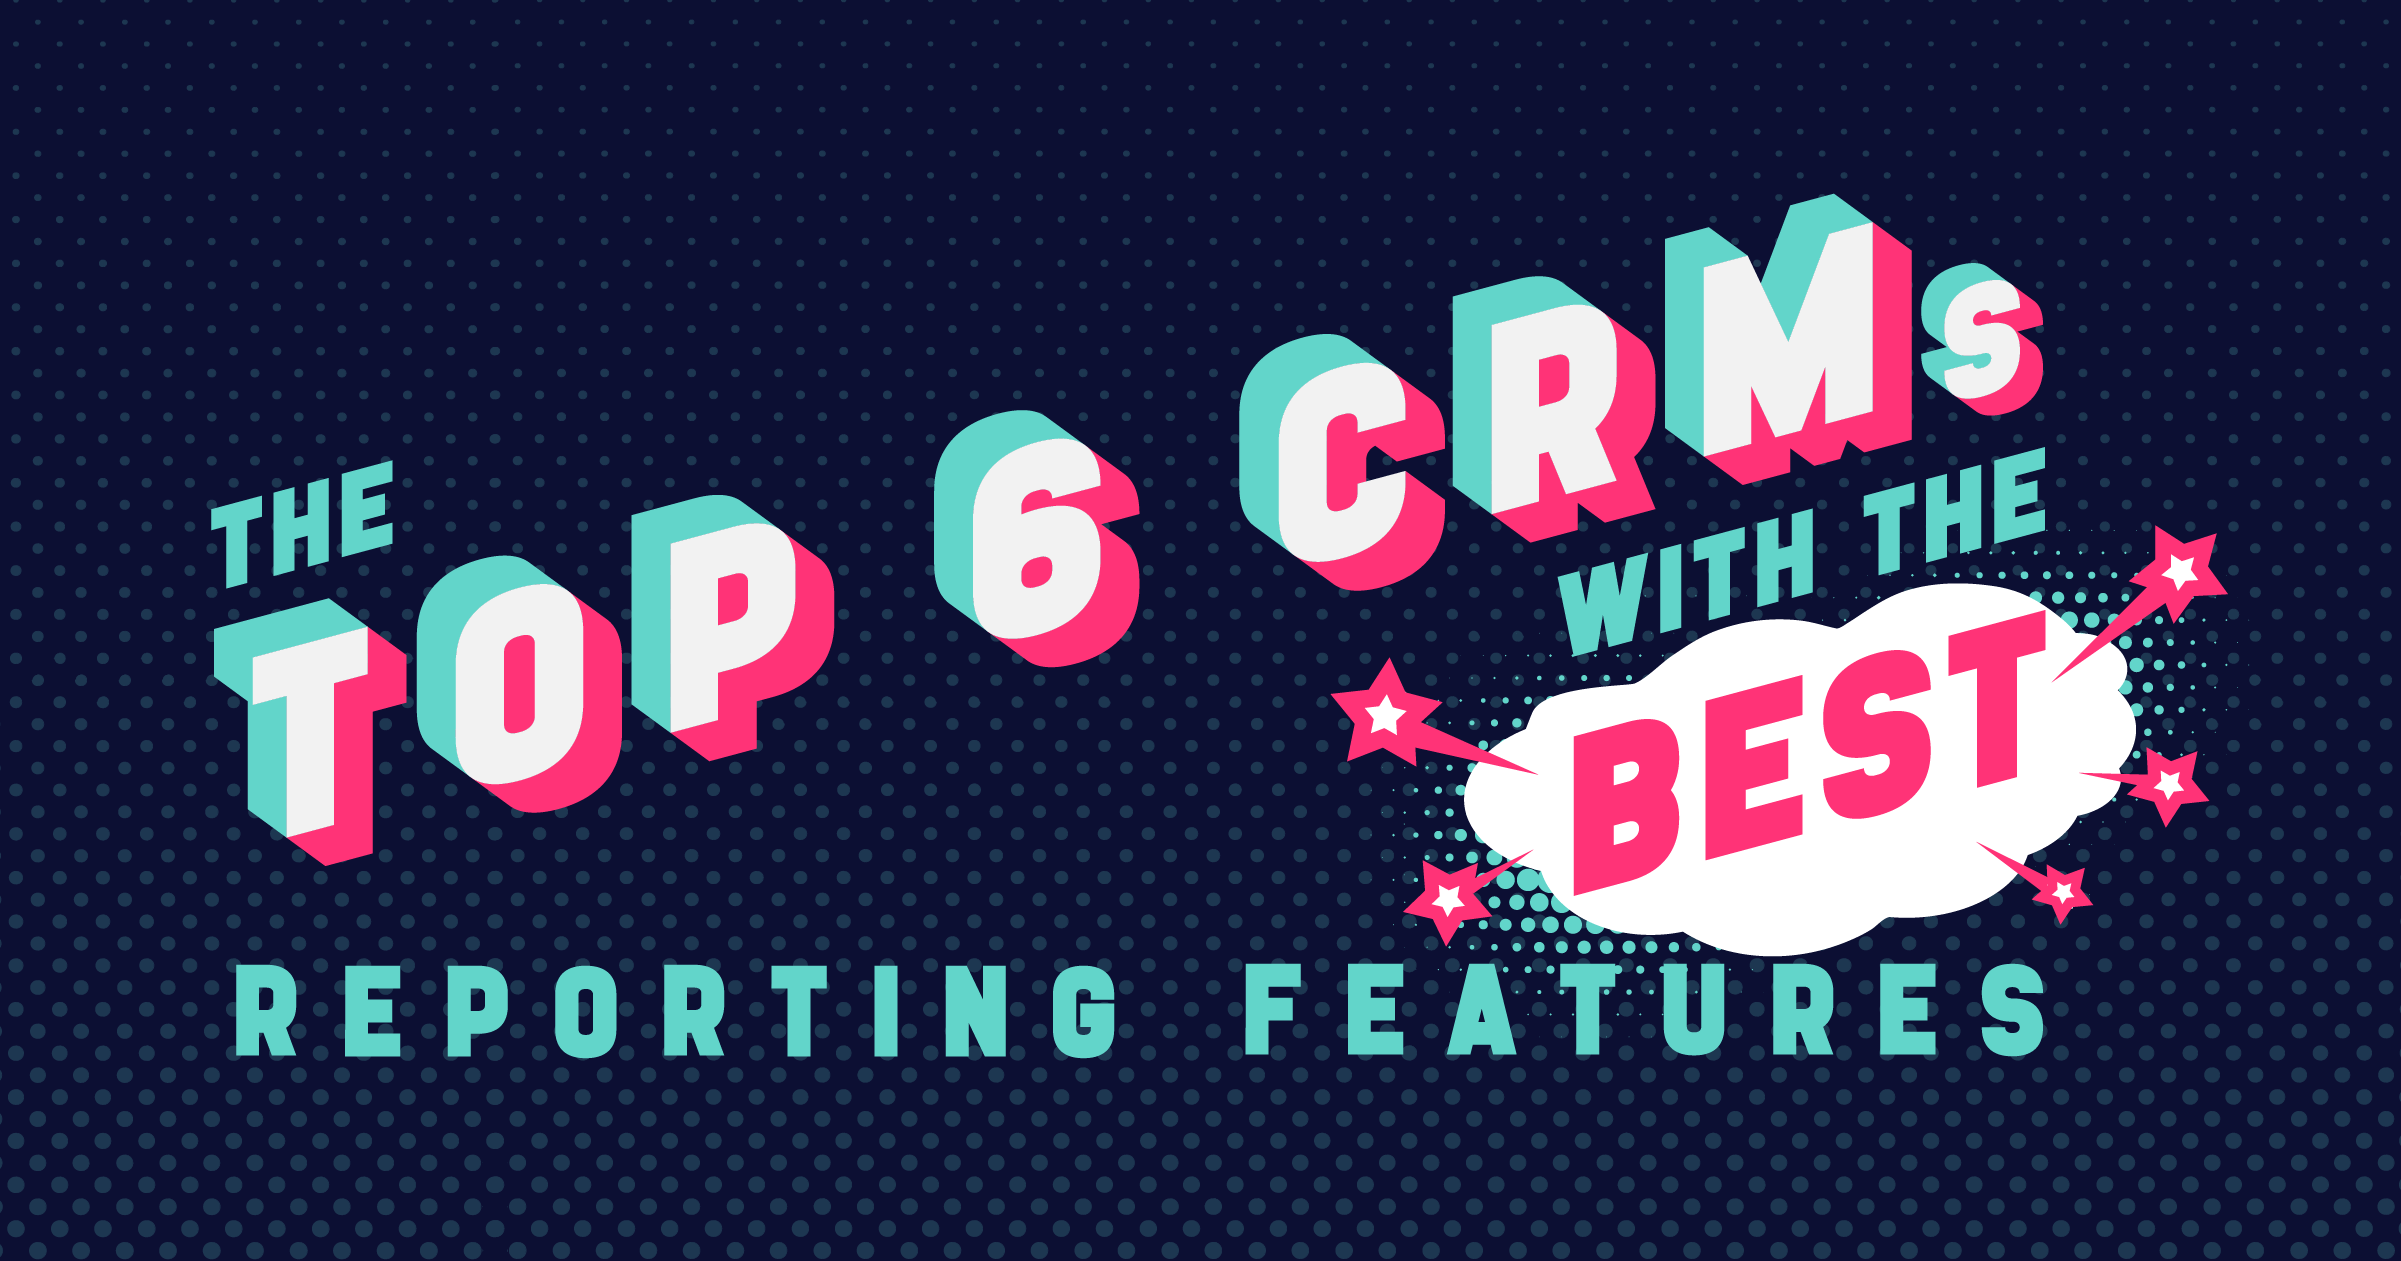 The Top 6 CRMs With the Best Reporting Features